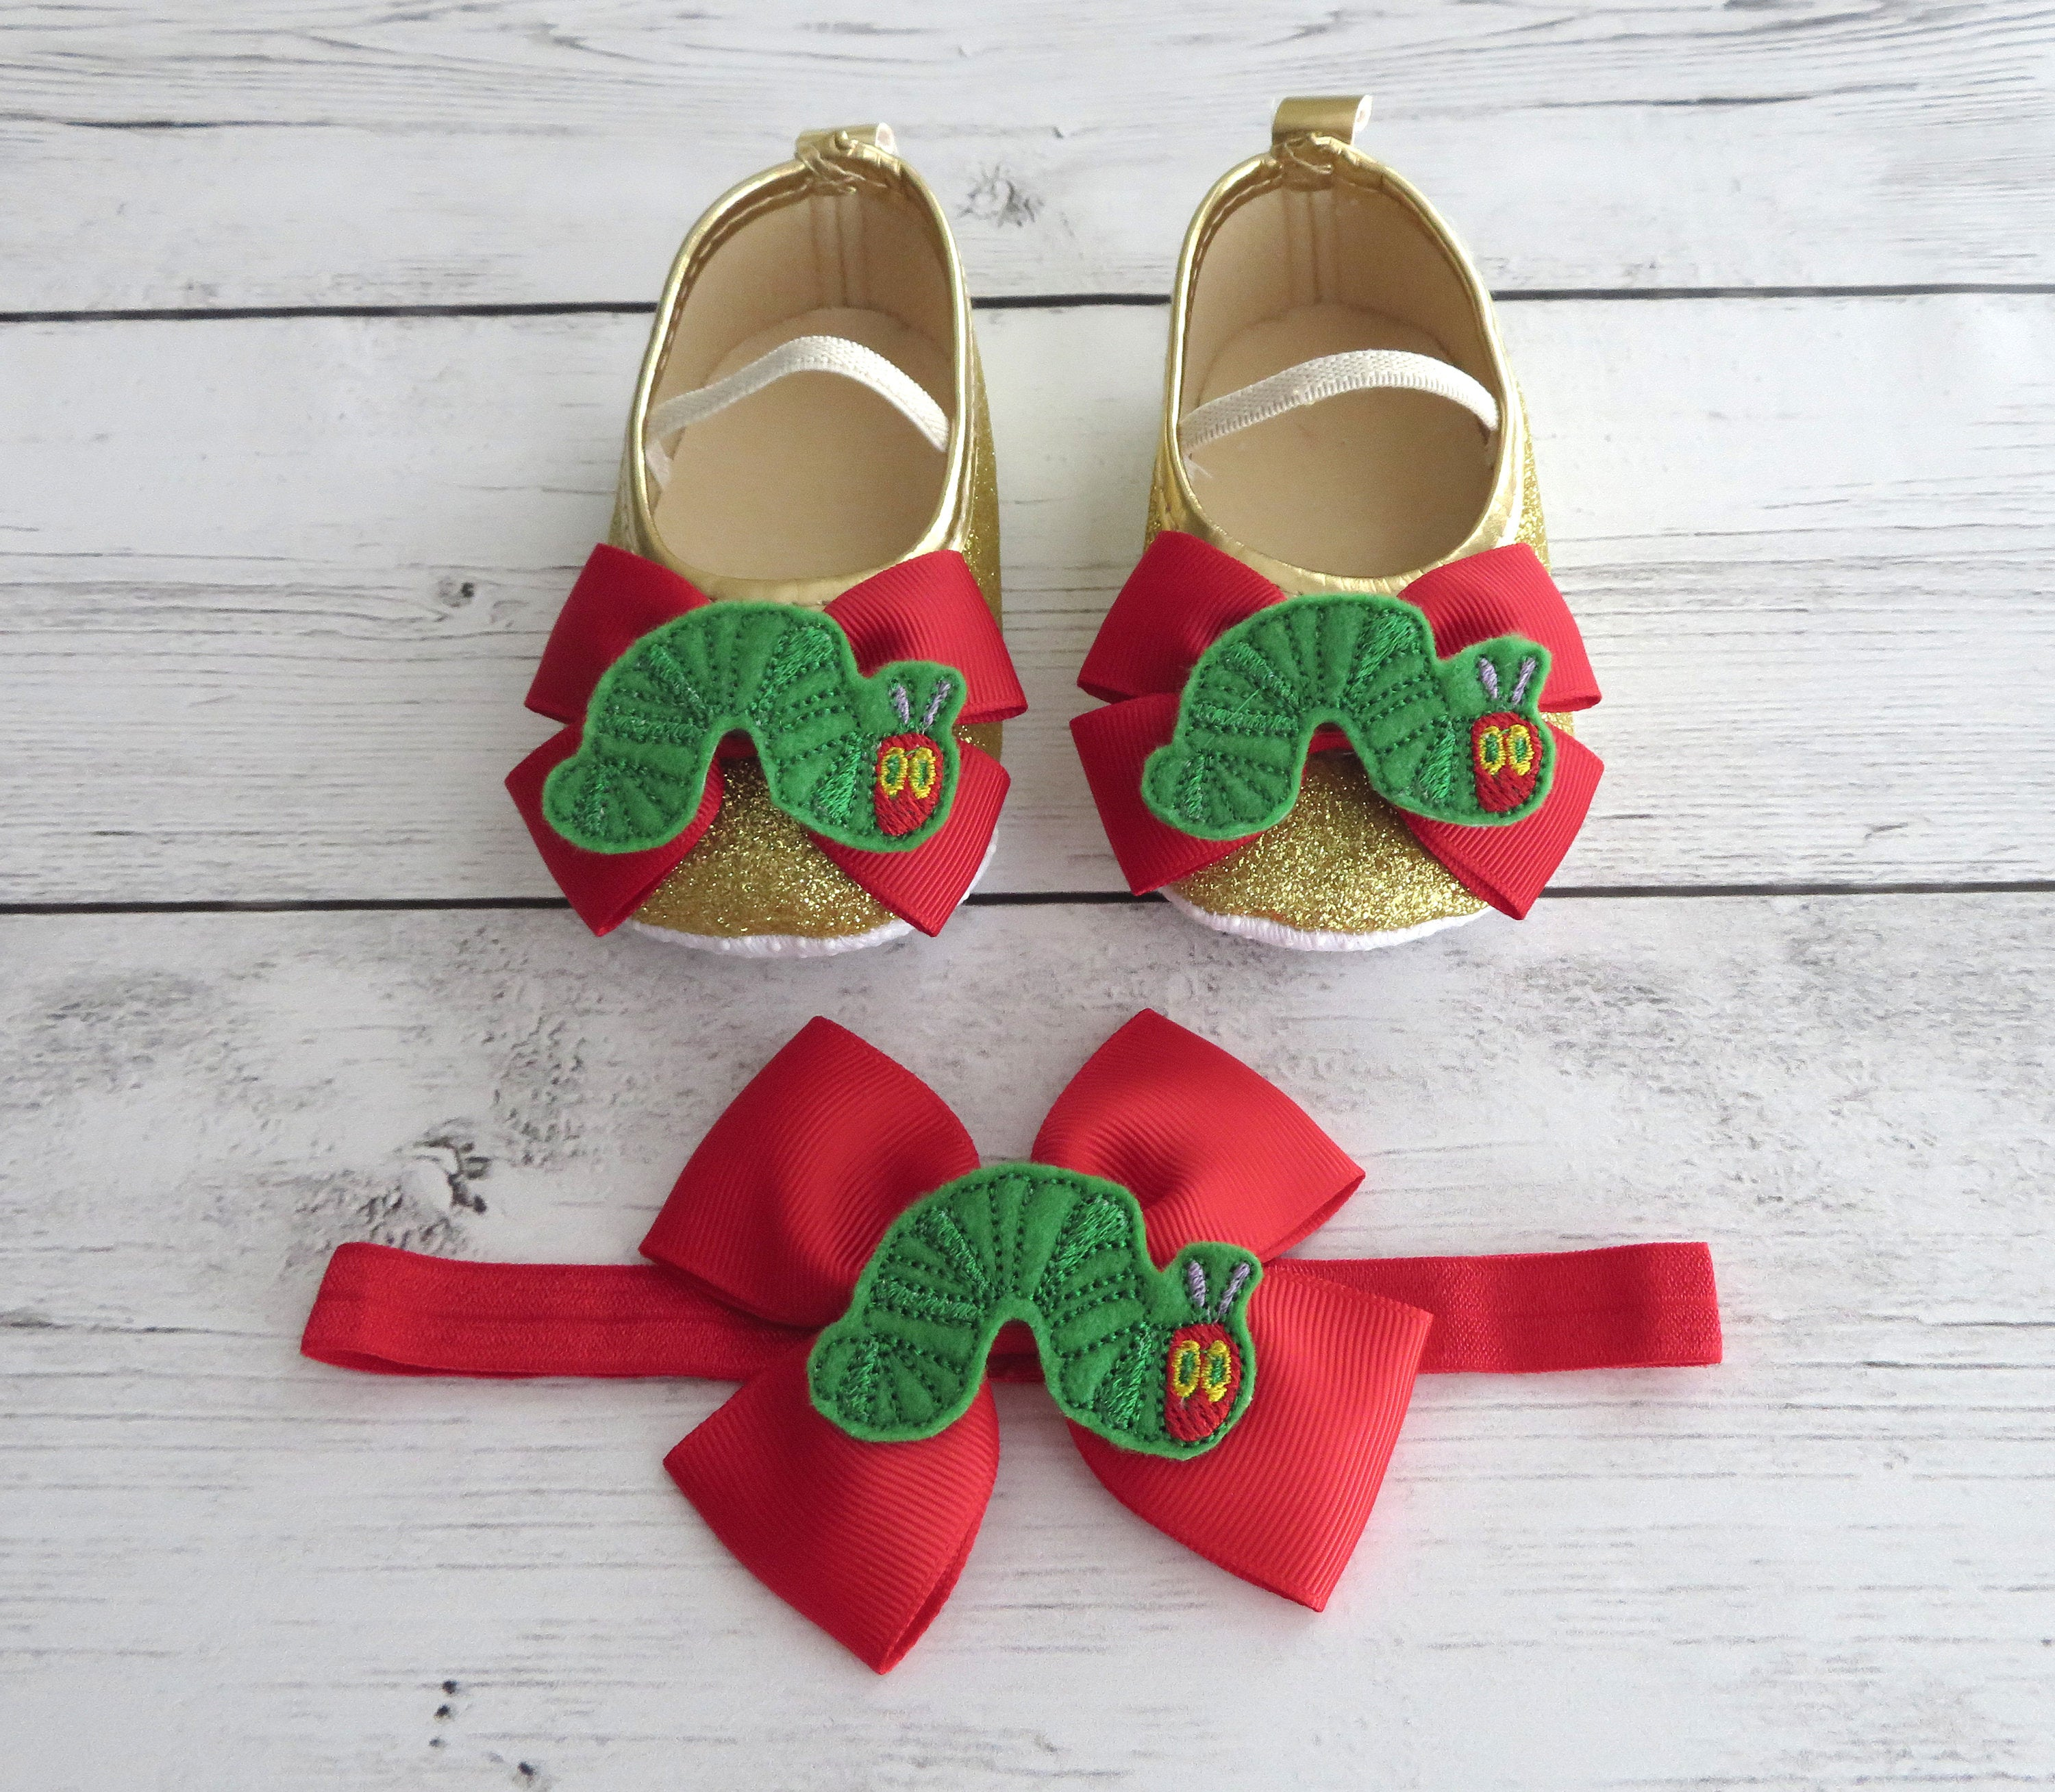 Hungry Caterpillar First Birthday Shoes & Headband for Girl -  gold glitter shoes, 1st bday shoes red, caterpillar birthday girl,